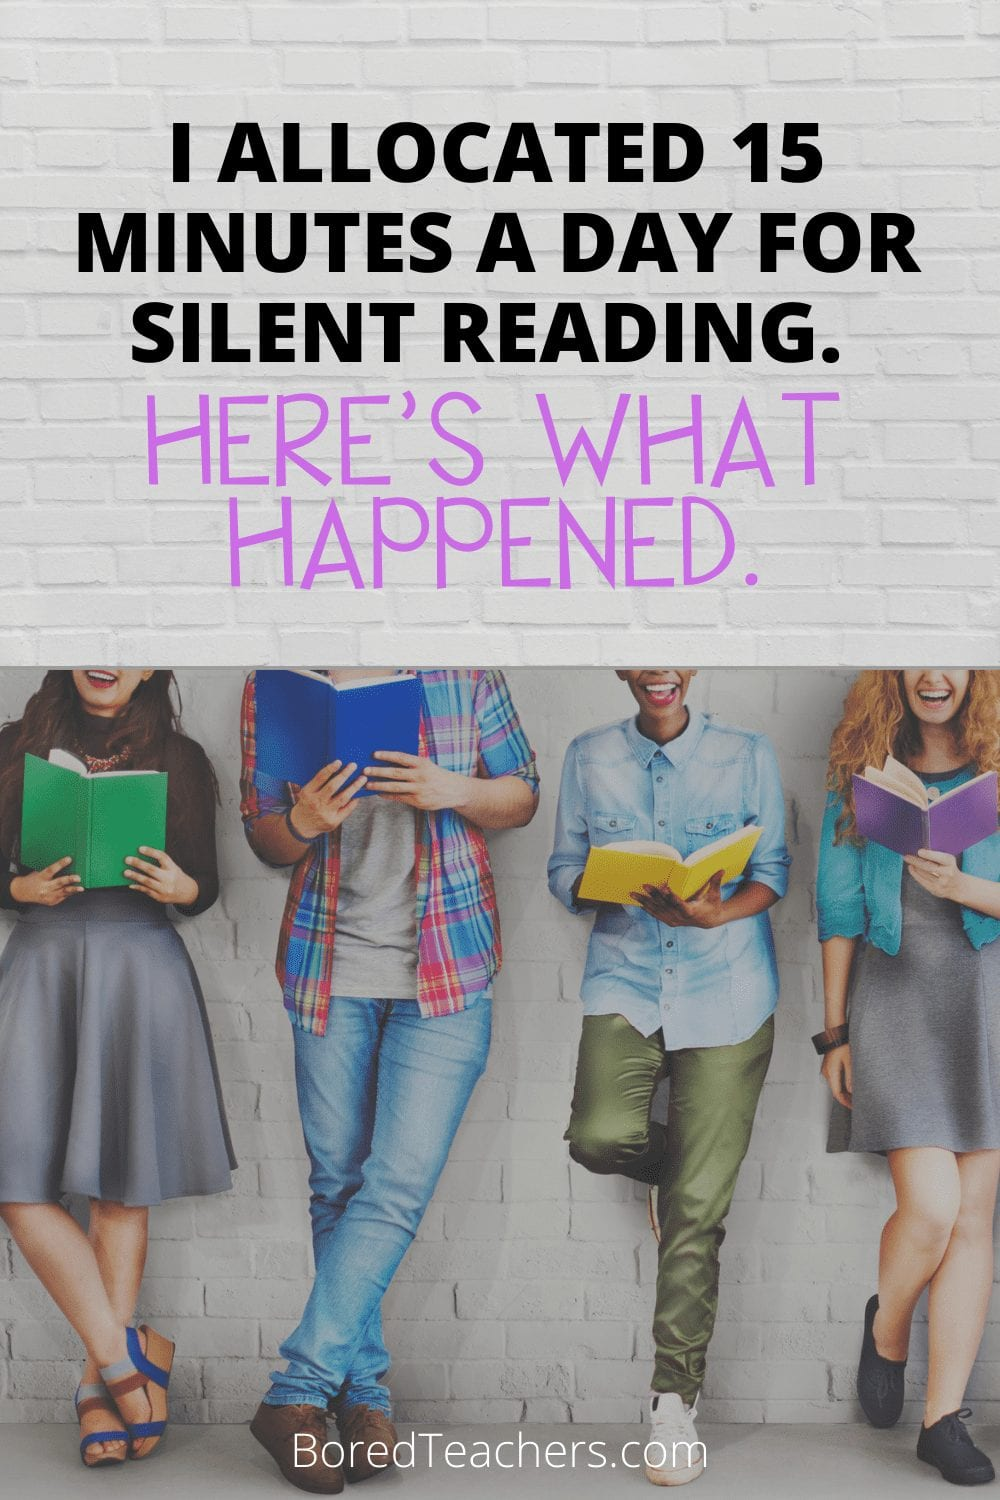 I Allocated 15 Minutes a Day For Silent Reading. Here's What Happened.